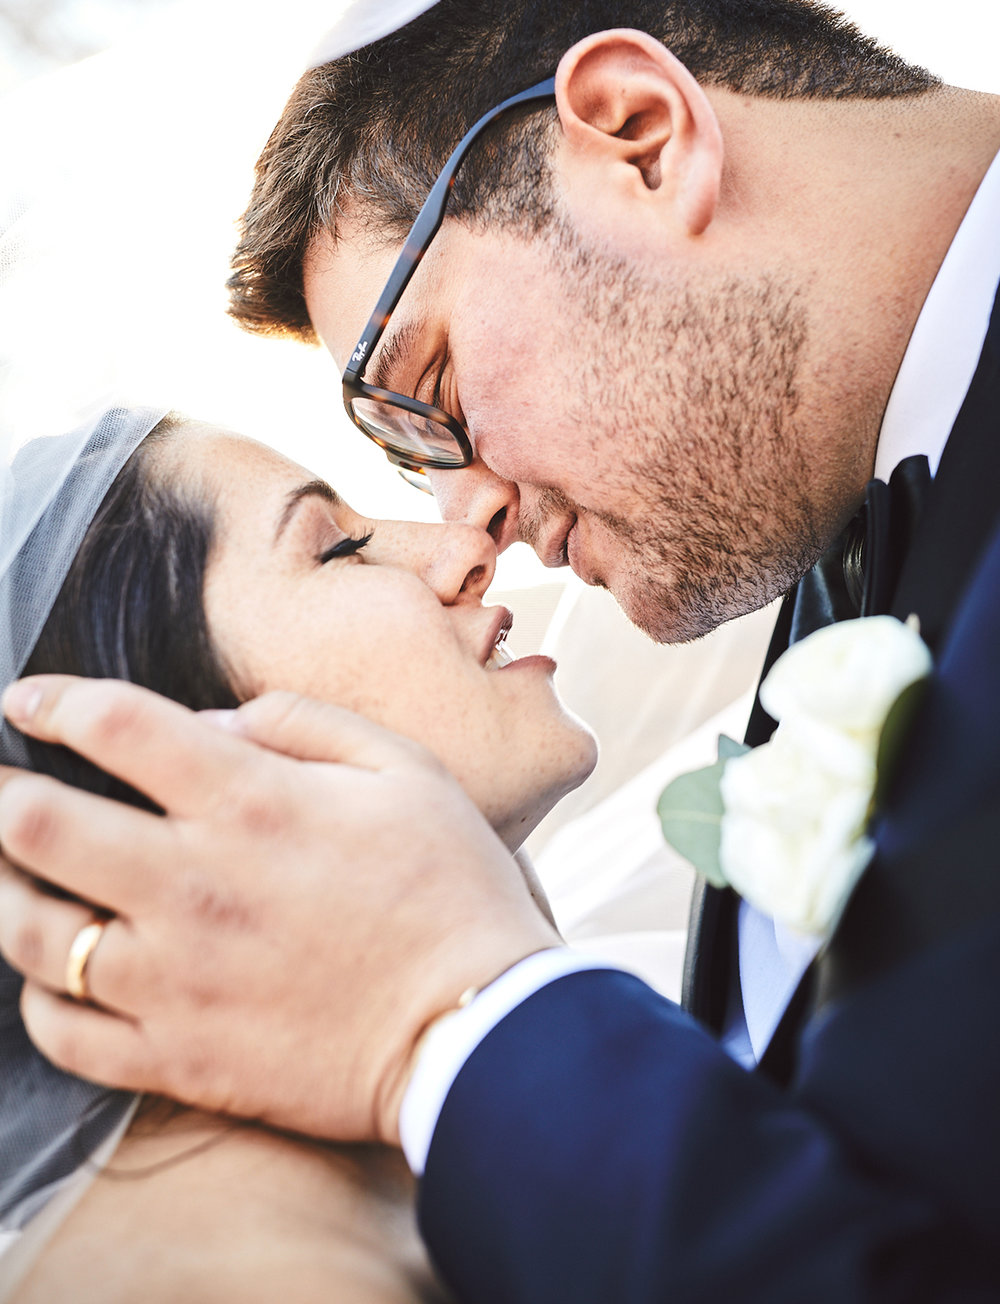 180324_StonehouseatStirlingRidgeWeddingPhotography_NJWeddingPhotographer_By_BriJohnsonWeddings_0120.jpg